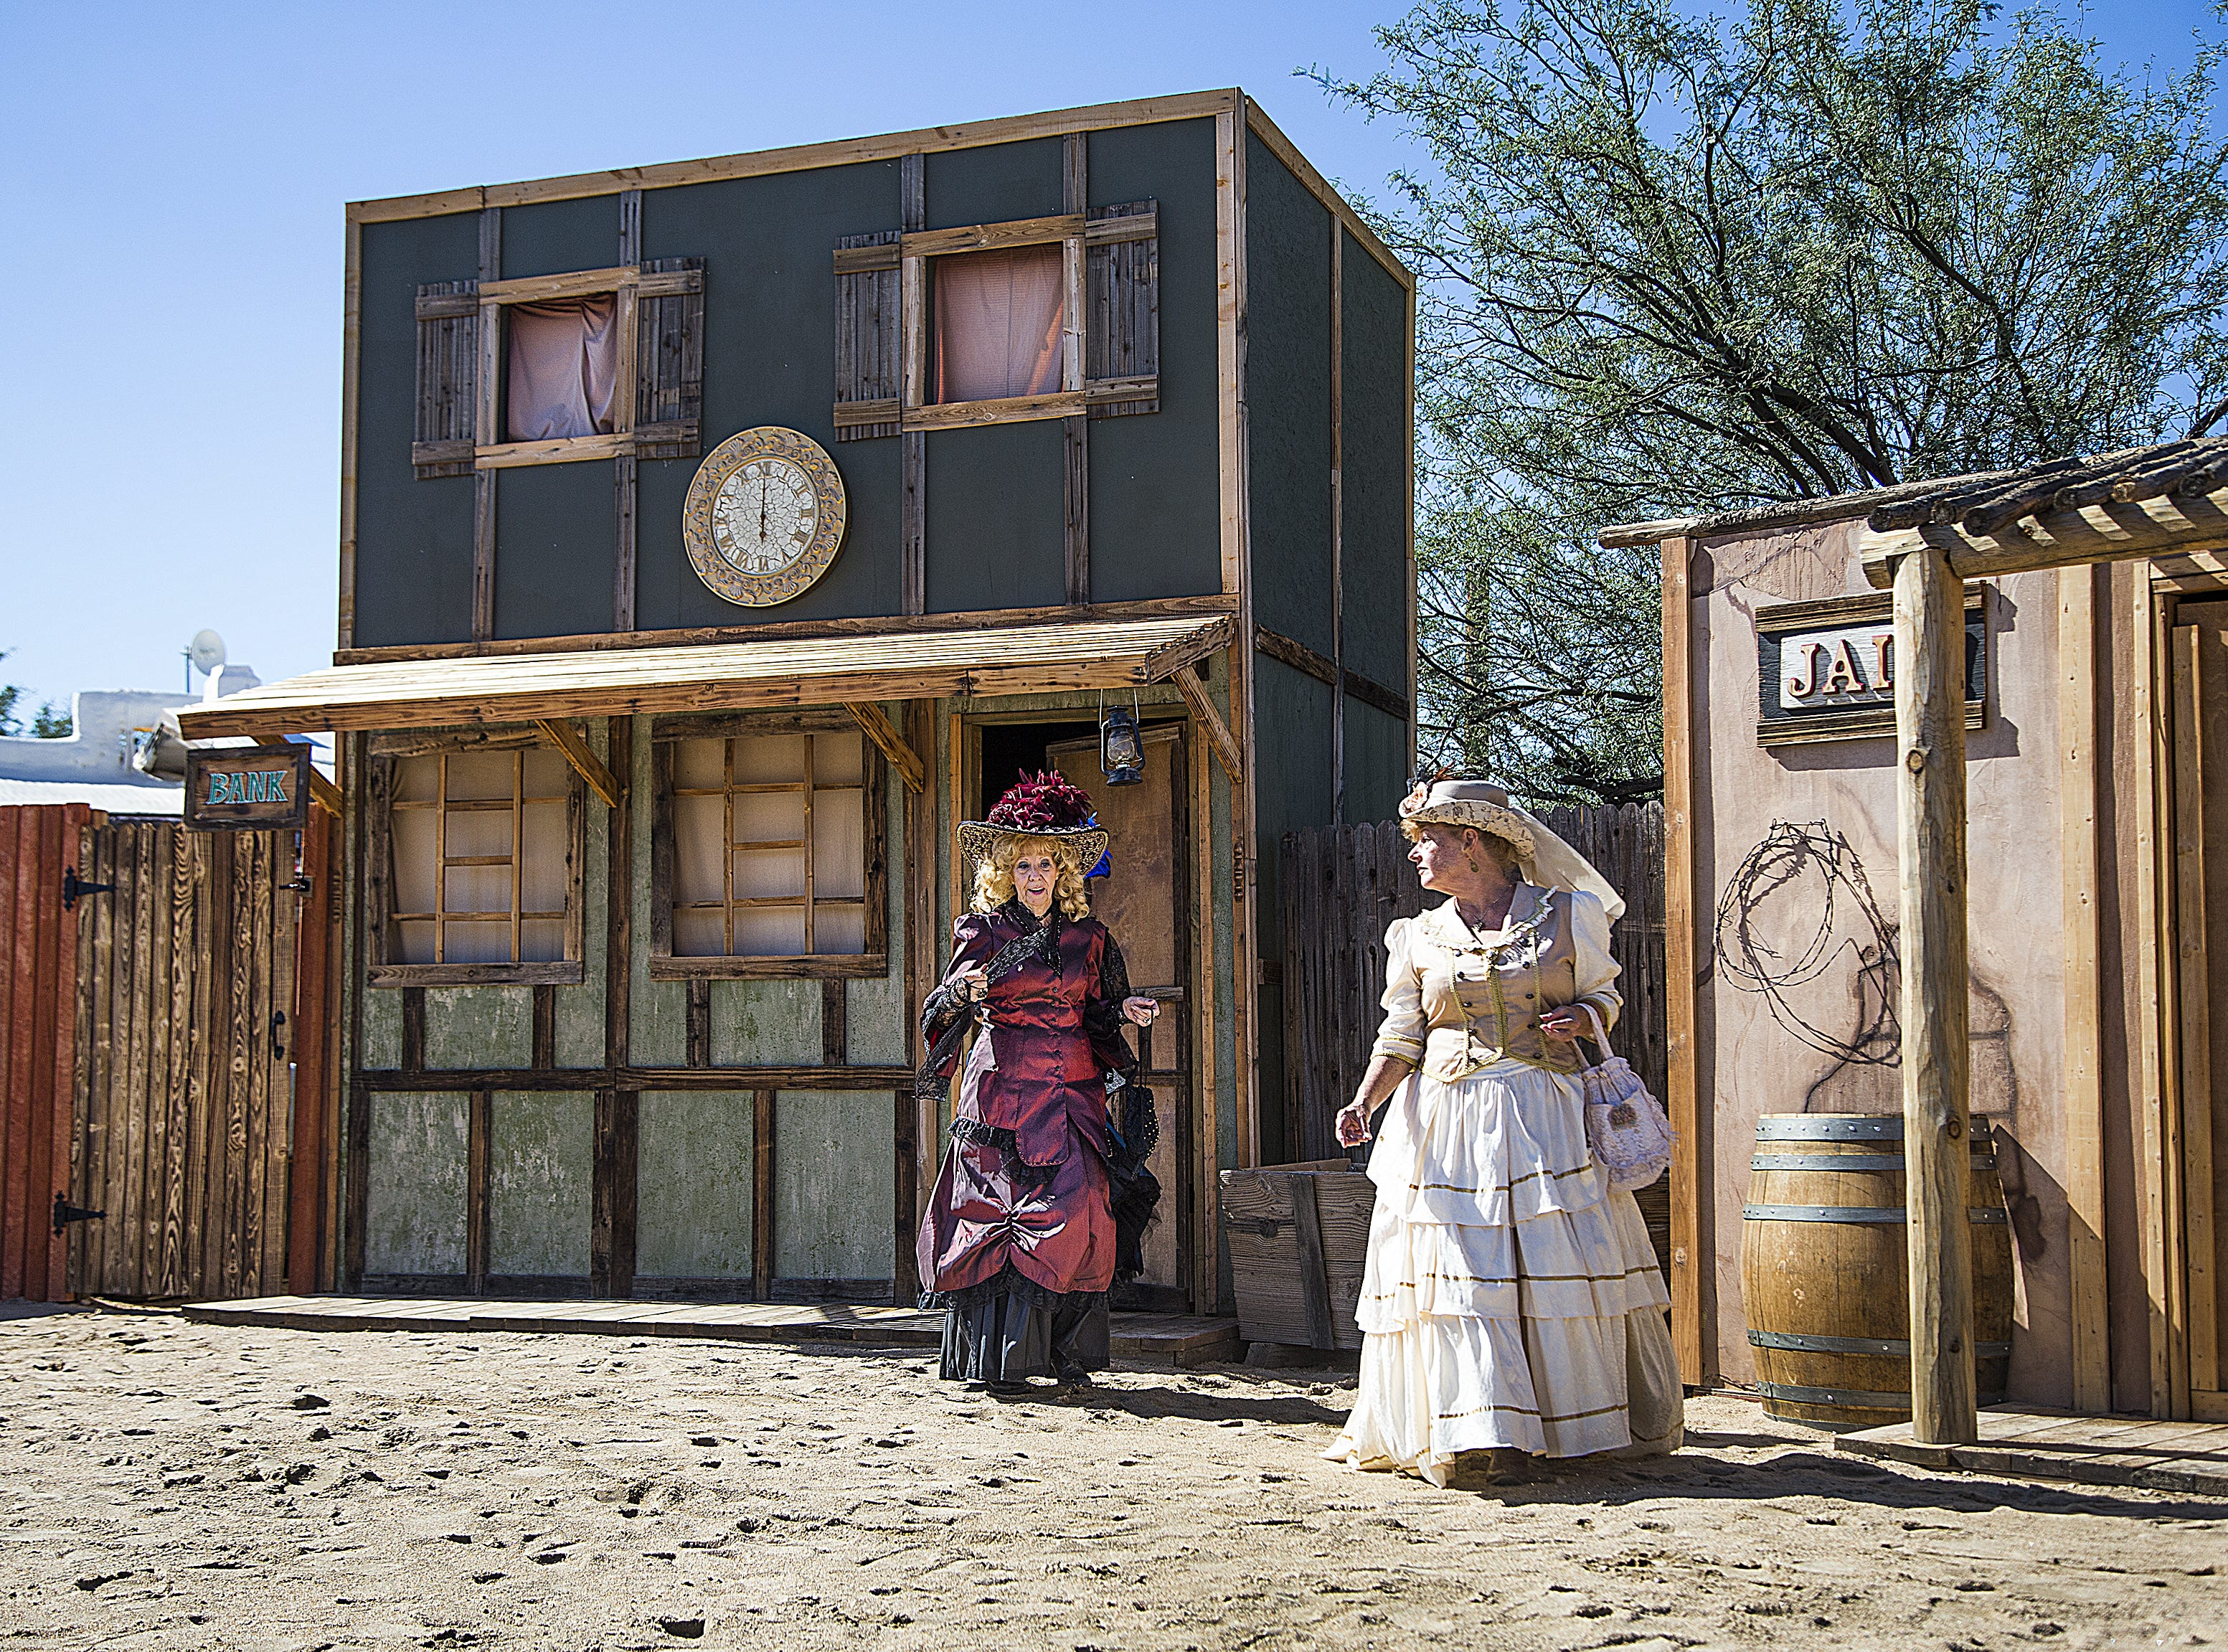 Actors with Six Gun Entertainment prepare to perform their Wild West stunt show at Frontier Town in Cave Creek, Tuesday, Oct. 9, 2018.